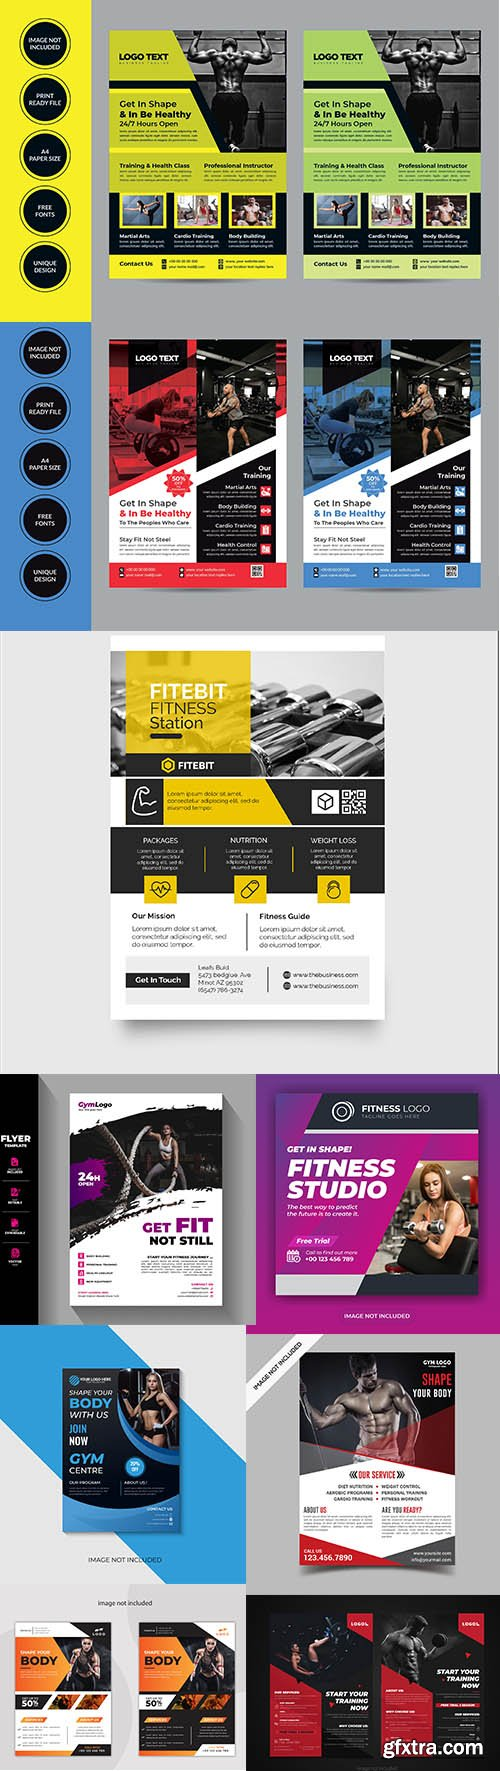 Gym and fitness flyer template collection Vol 3